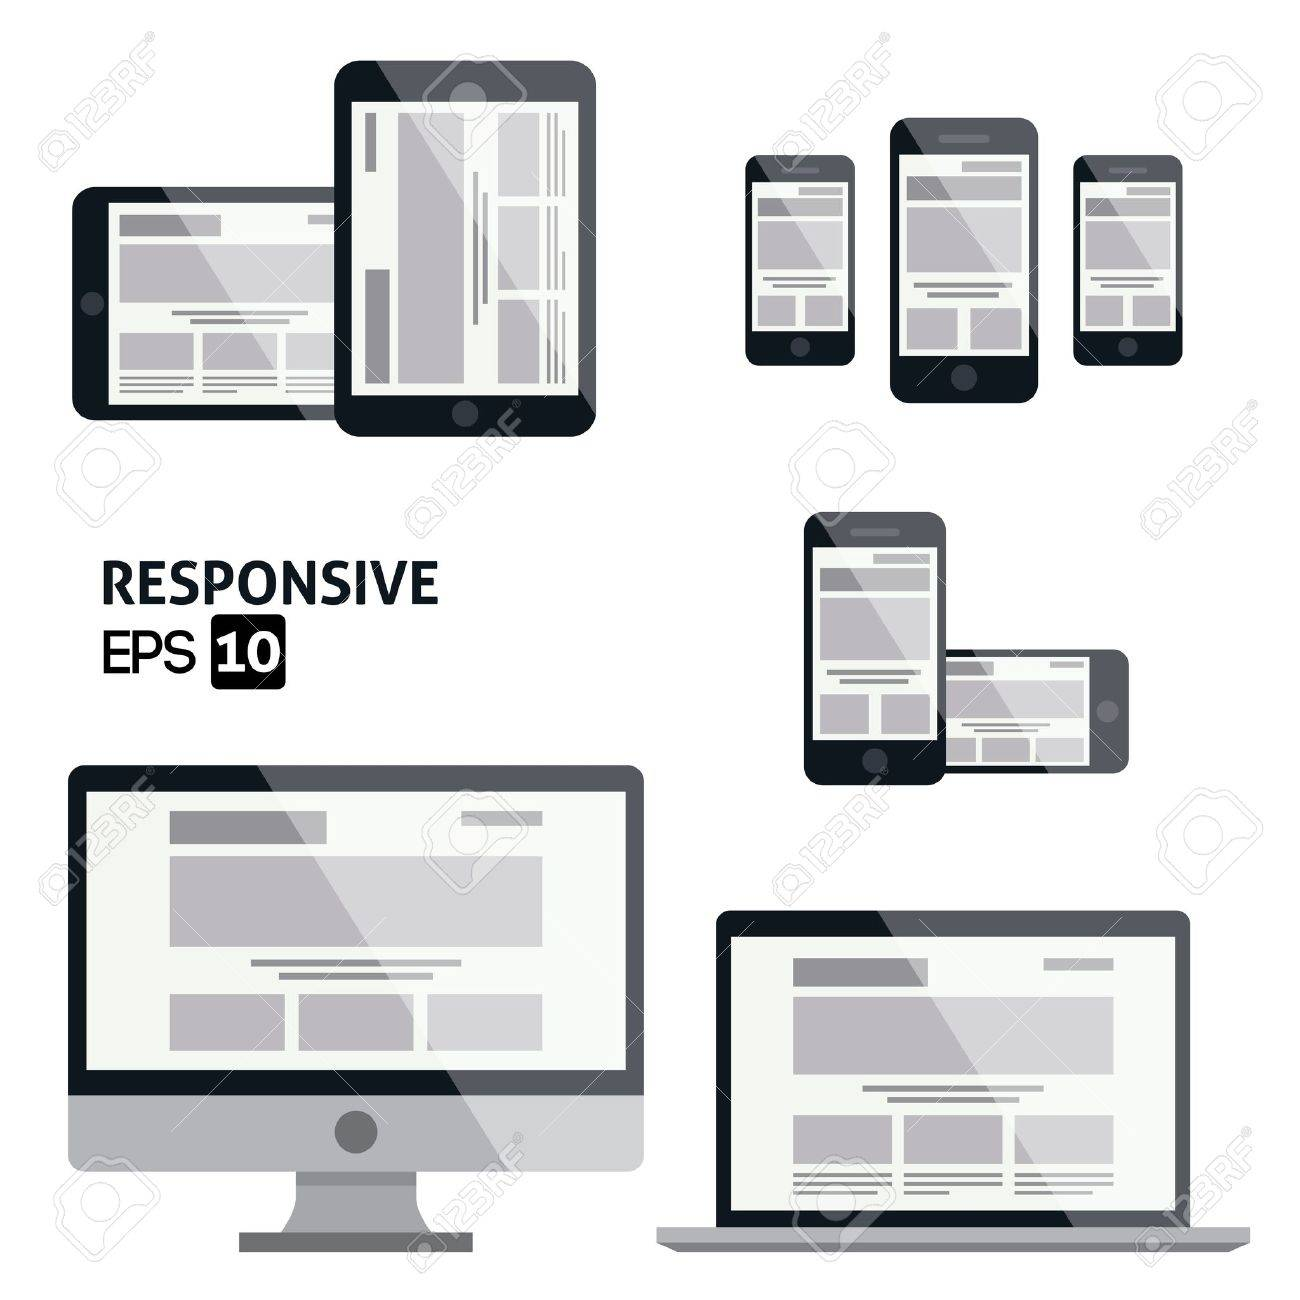 Responsive Web Design    Glossy Icon Stock Vector - 20322102